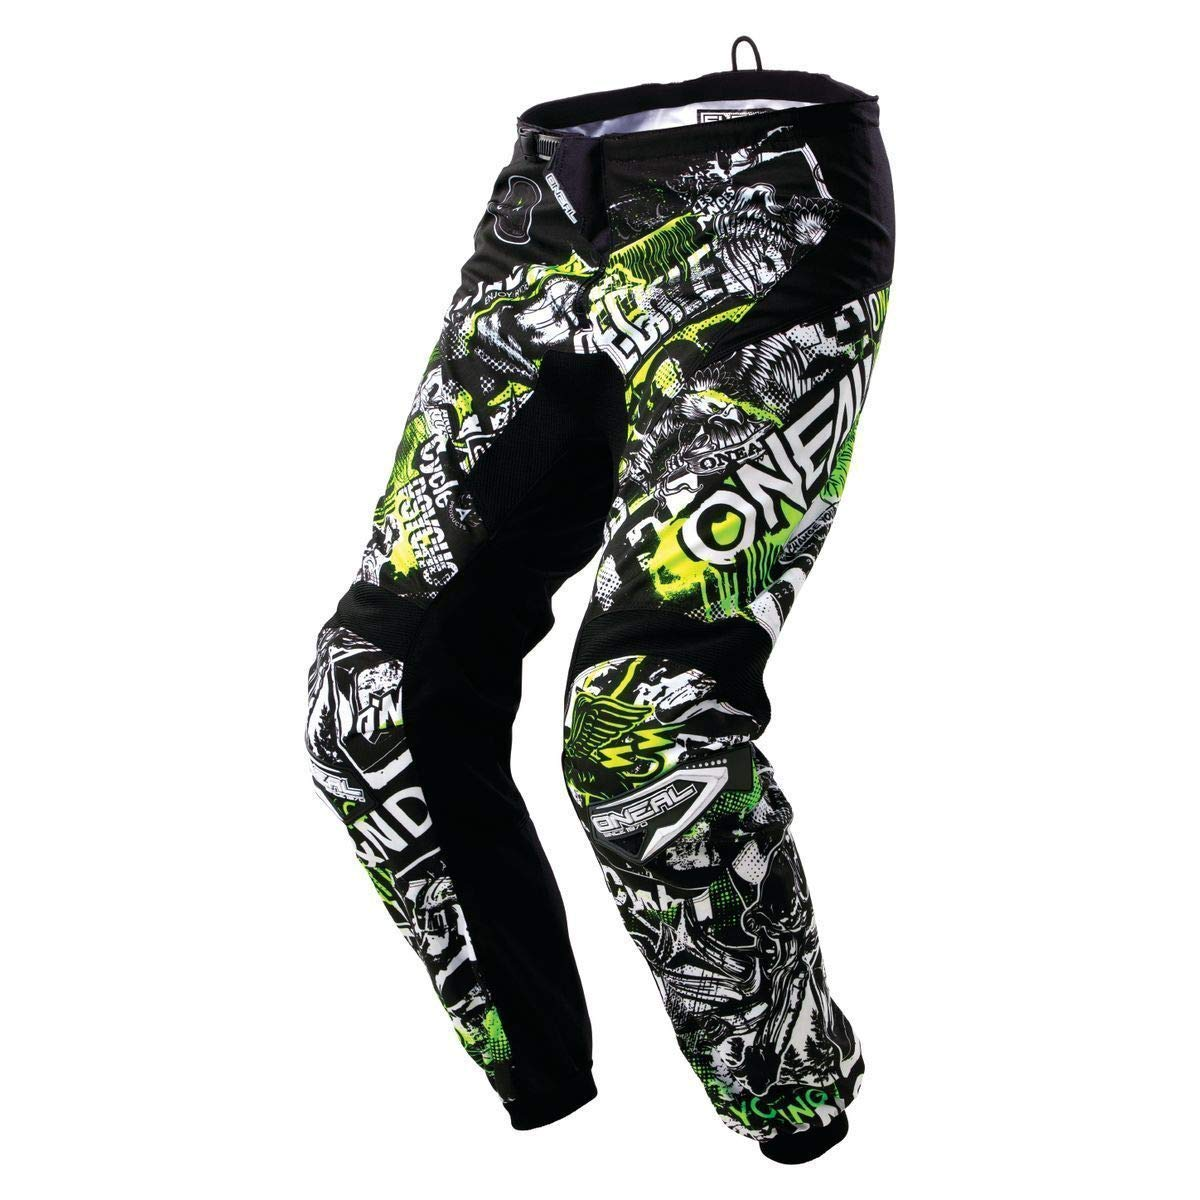 Black//Hi-Viz, Size 30 ONeal Unisex-Adult Element Attack Pant